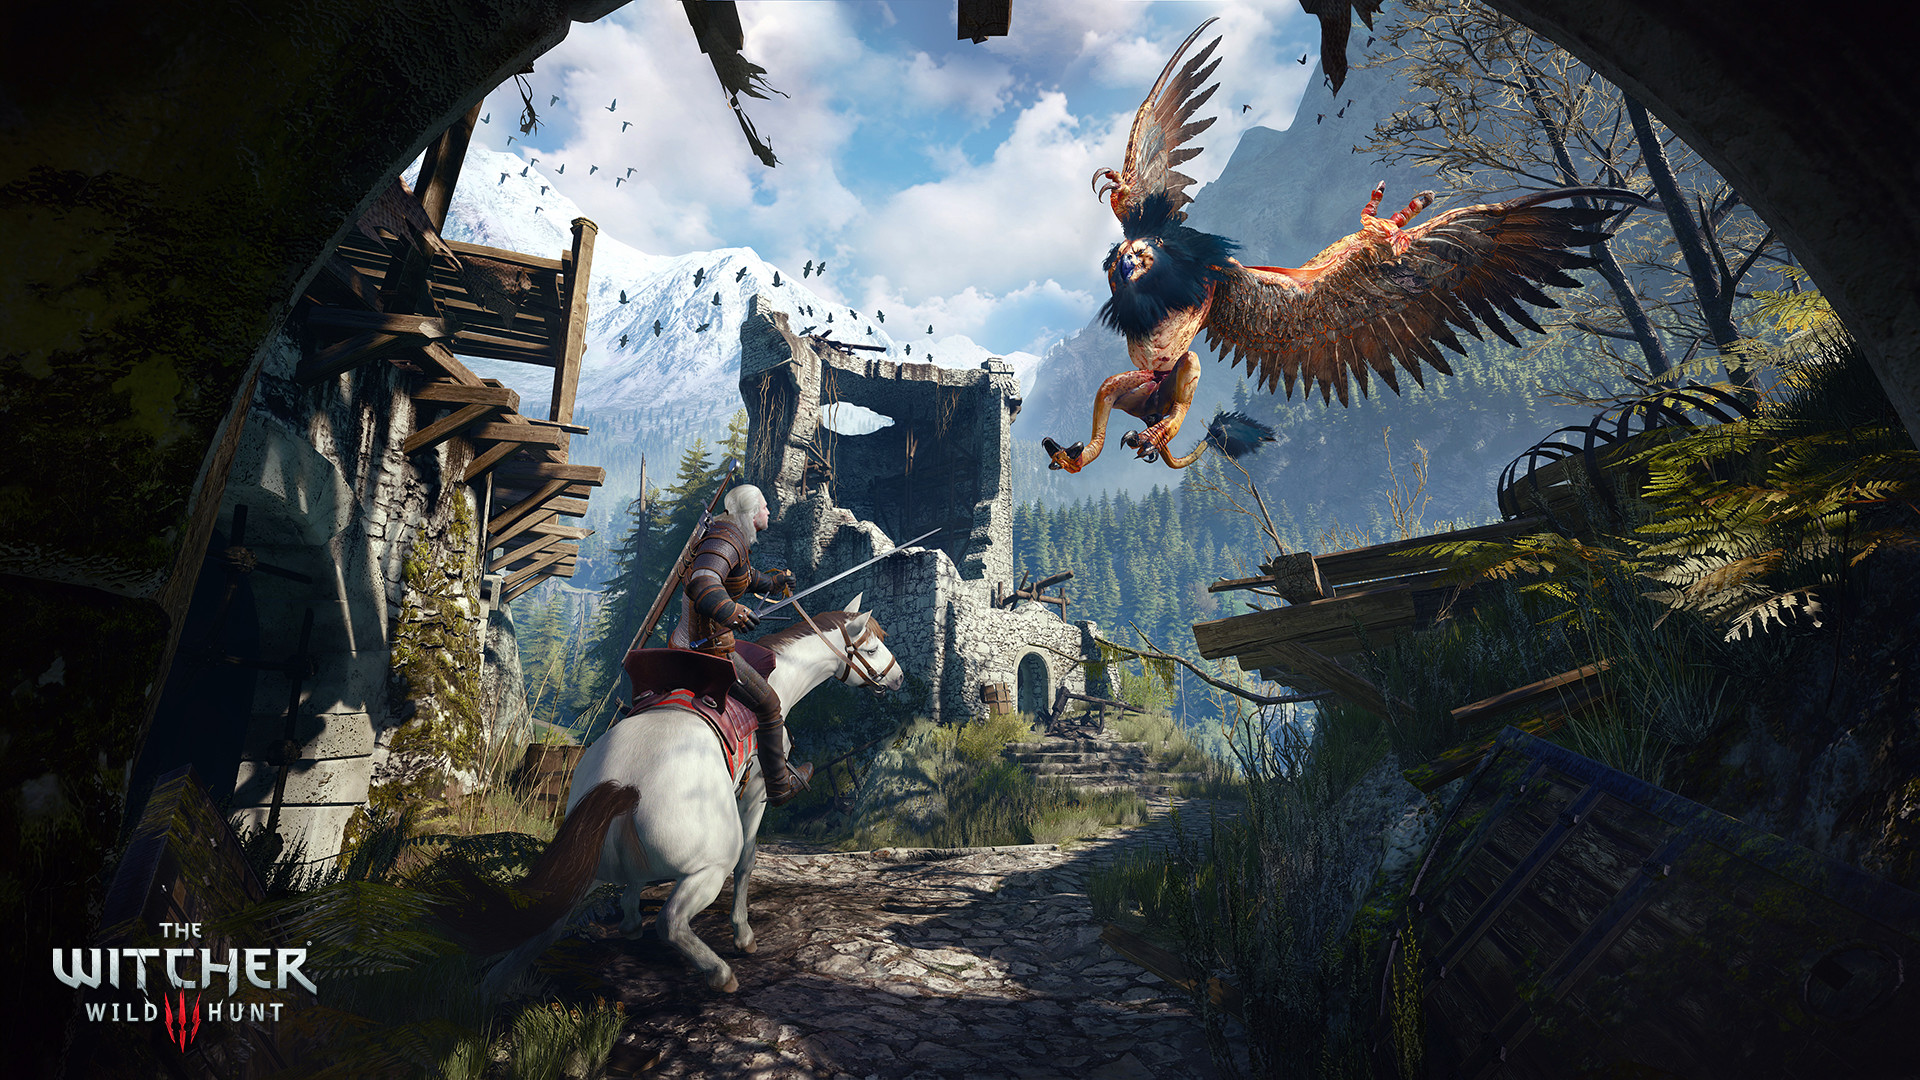 The Witcher 3 Wild Hunt ESPAÑOL PC Full + 16 DLC + Update v1.10 + Hearts Of Stone DLC + REPACK 6 DVD5 (JPW) 1